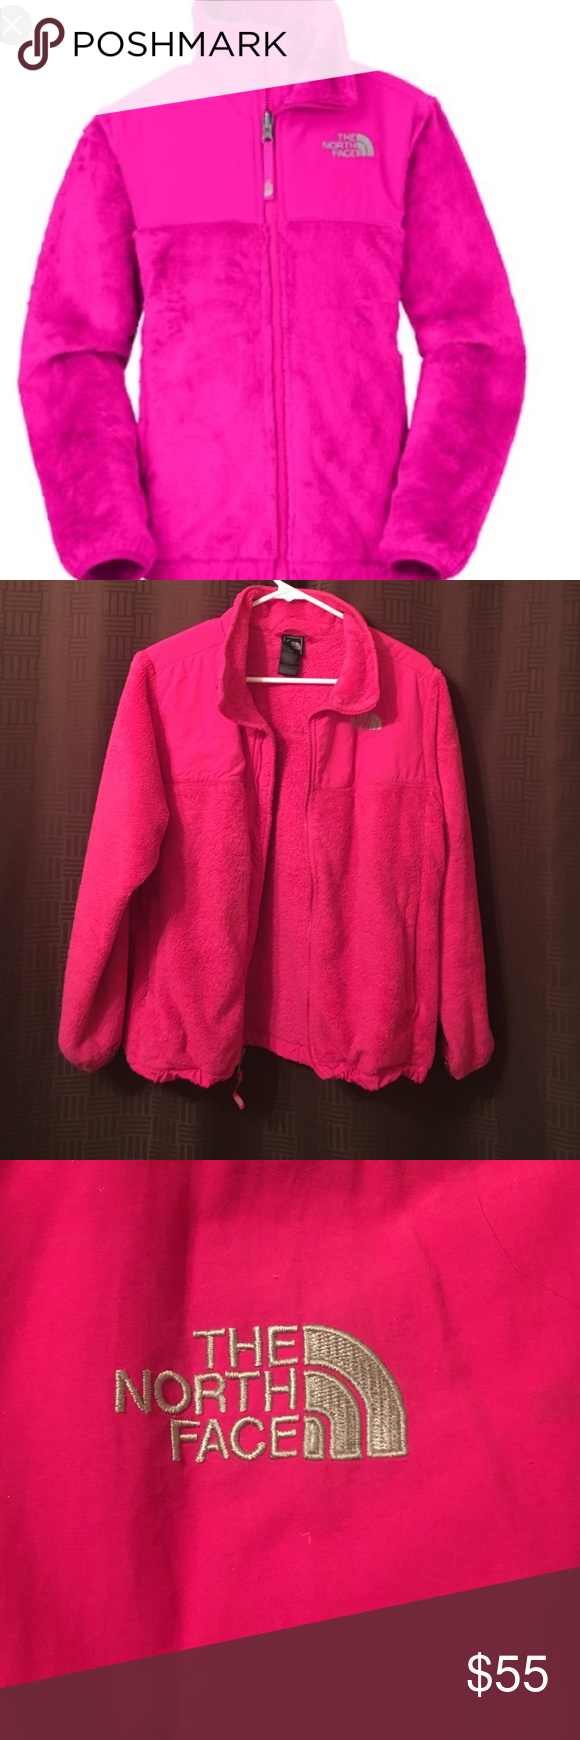 Pink north face jacket. Pink north face jacket girls XL 100% authentic in great condition North Face Jackets & Coats